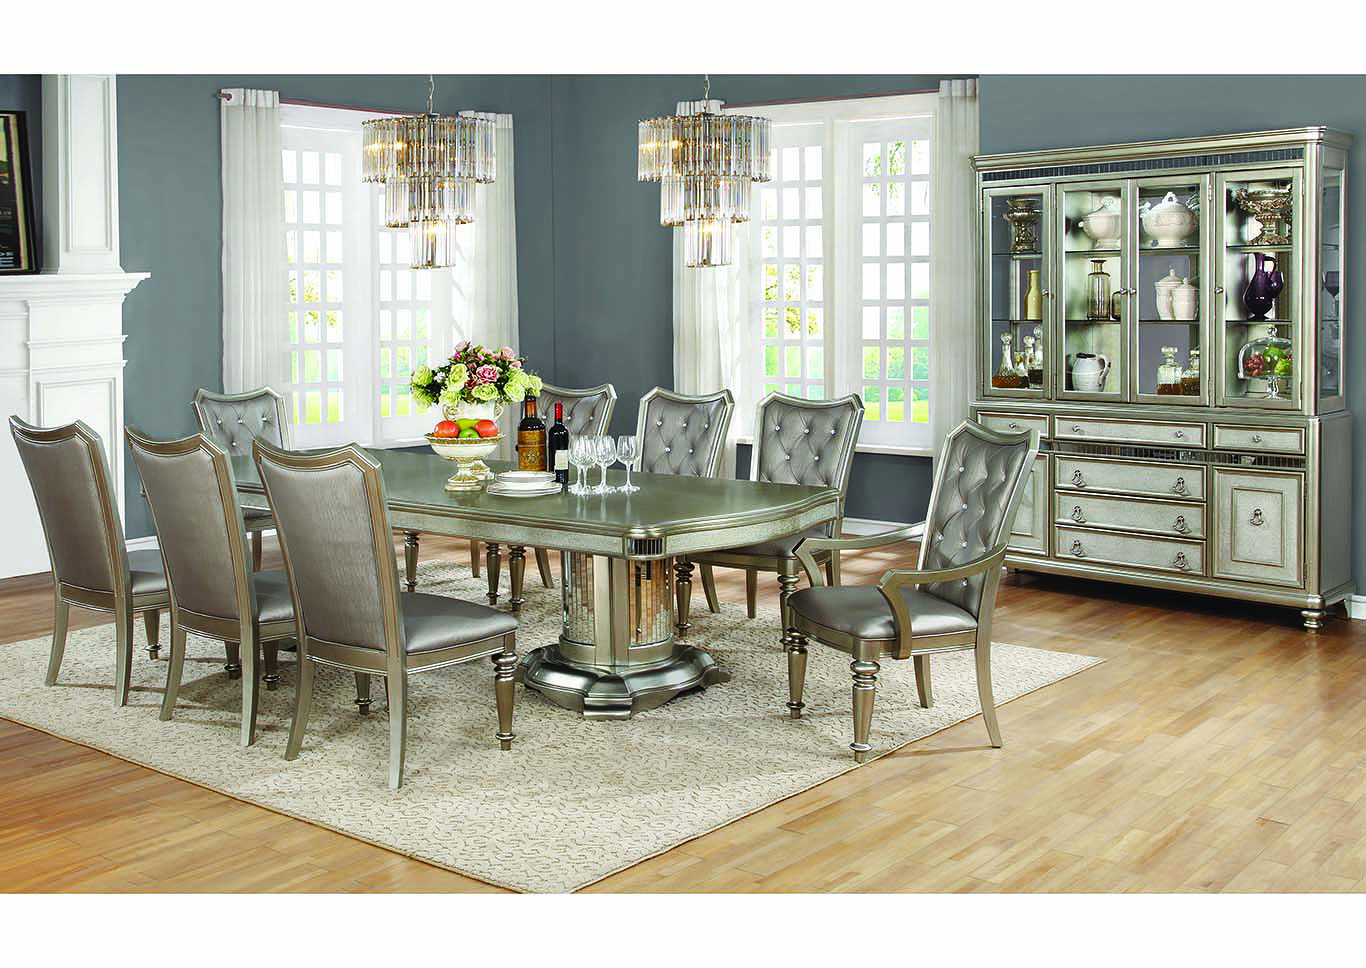 Metallic Platinum Dining Table w 2 Arm Chairs and 6 Side Chairs Coaster  Furniture. Wow Furniture   Dallas  TX Metallic Platinum Dining Table w 2 Arm